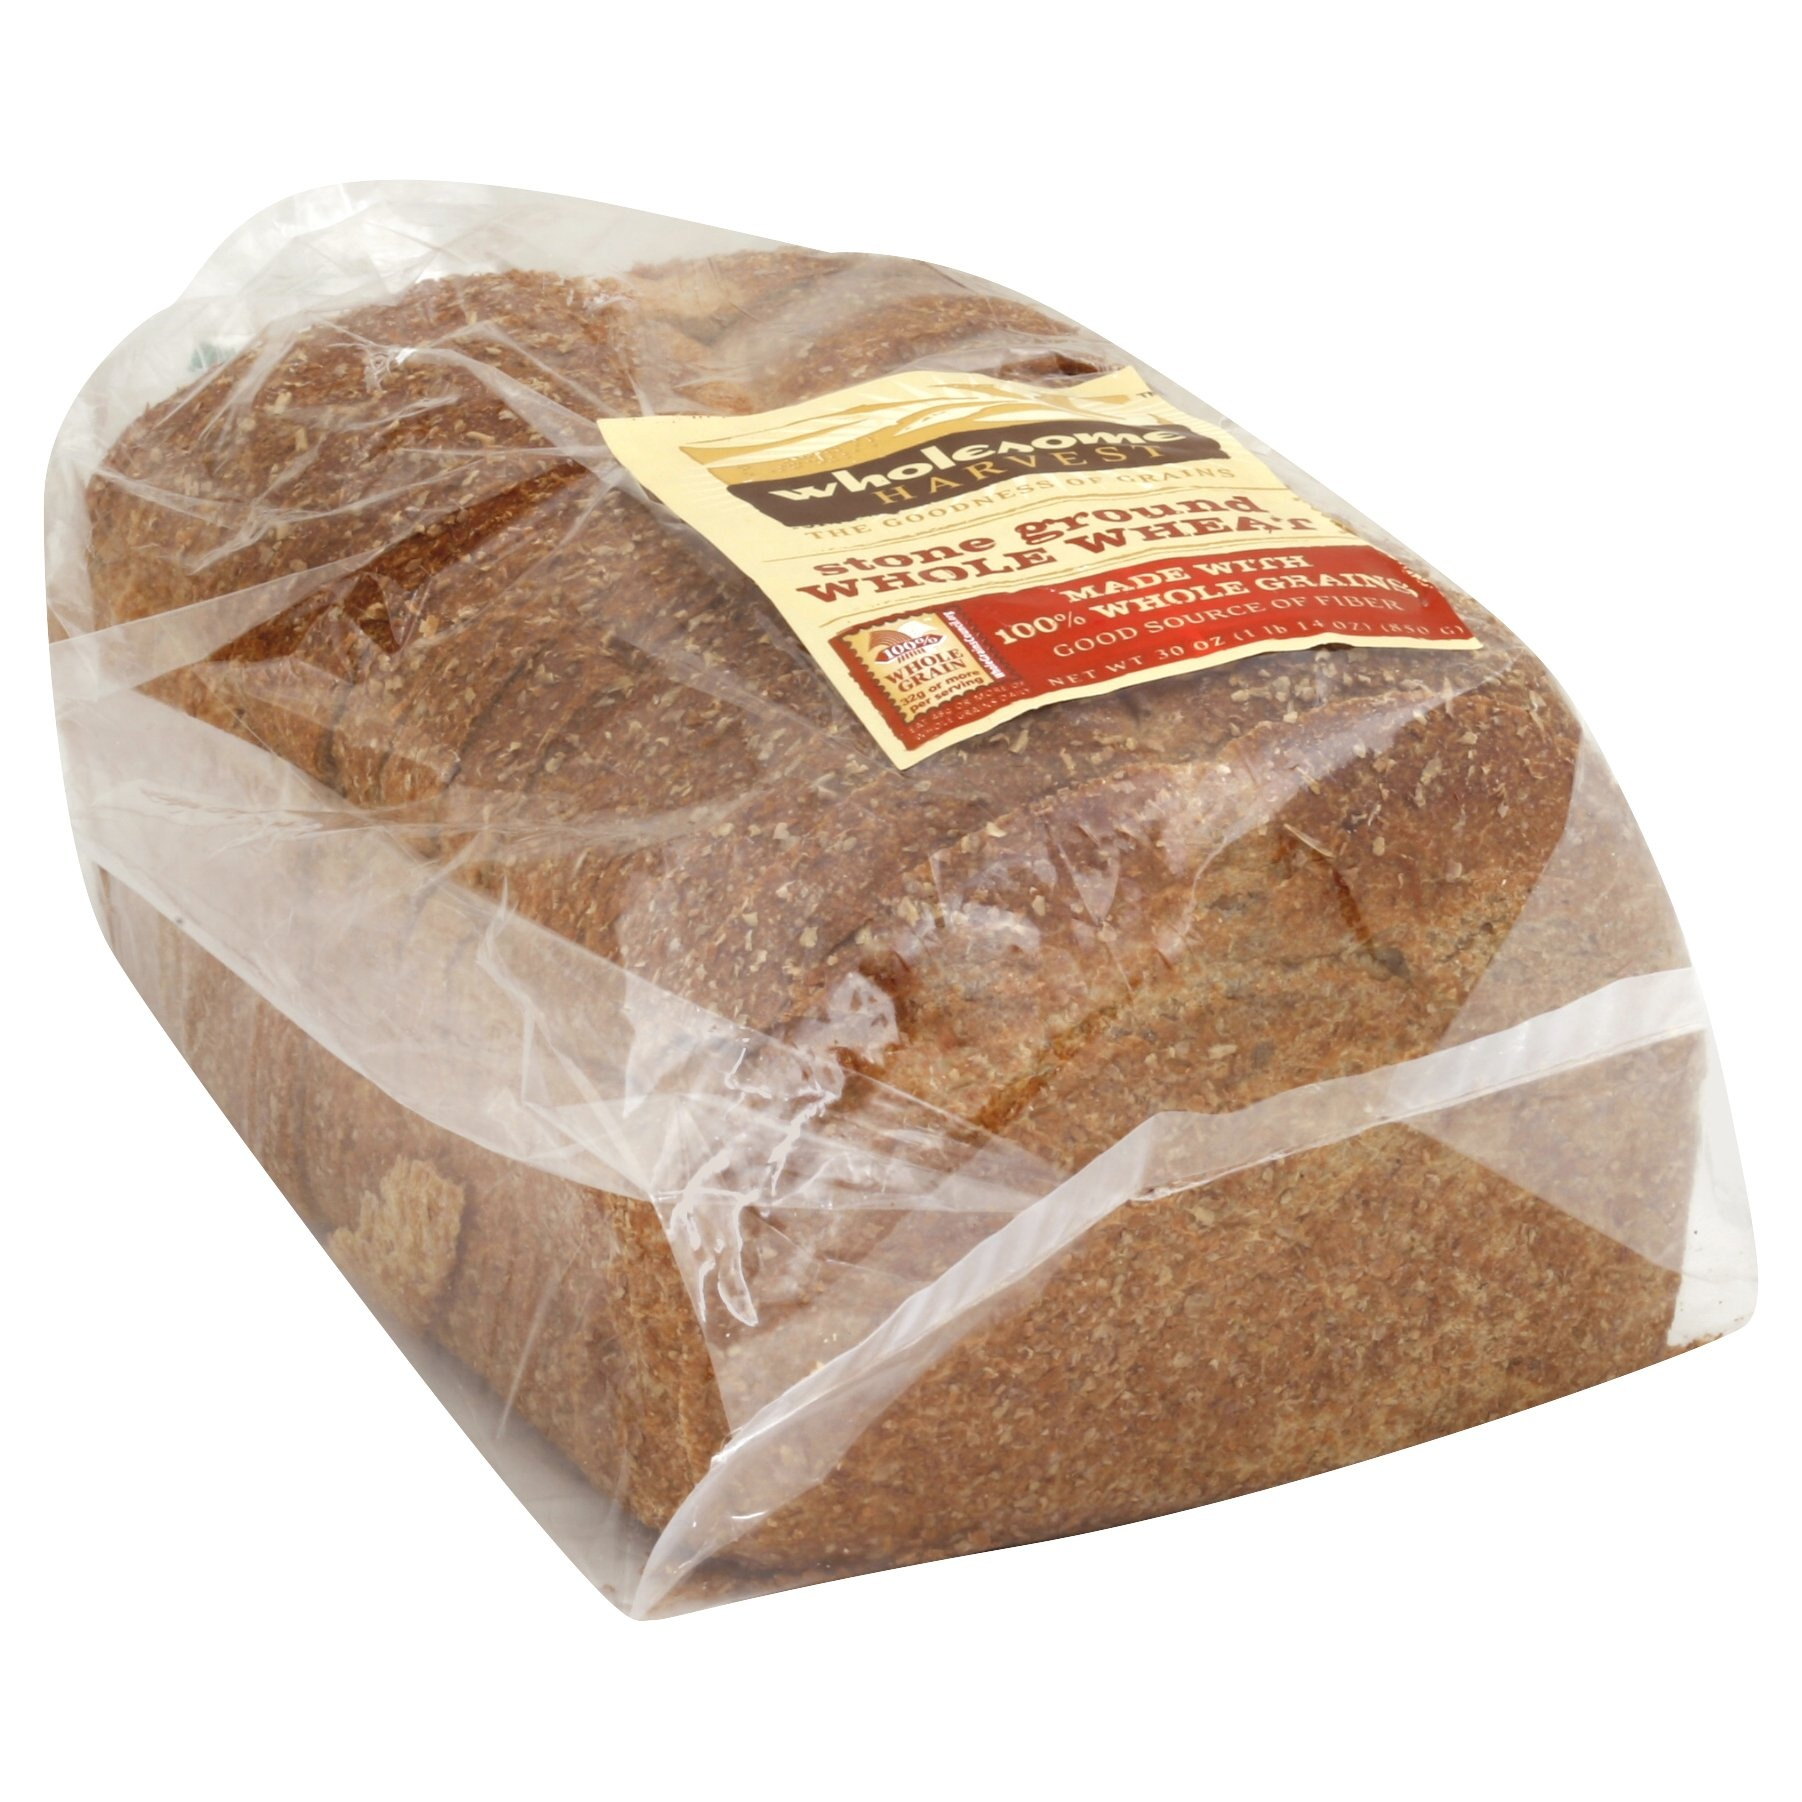 slide 1 of 1, Wholesome Harvest Stone Ground Whole Wheat Bread,